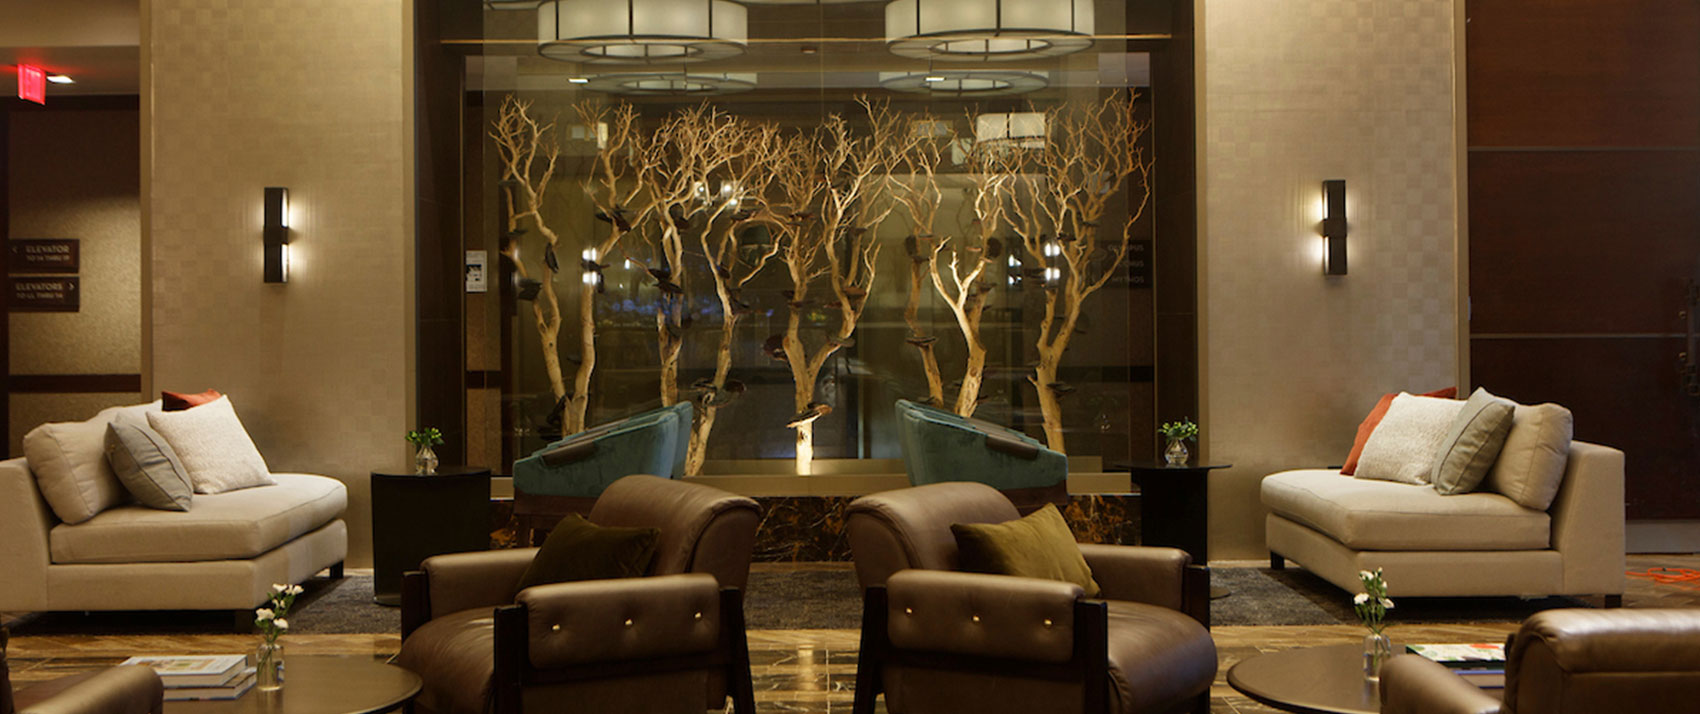 Kimpton Muse Hotel lobby seating area with Autumn tree fixtures in display case